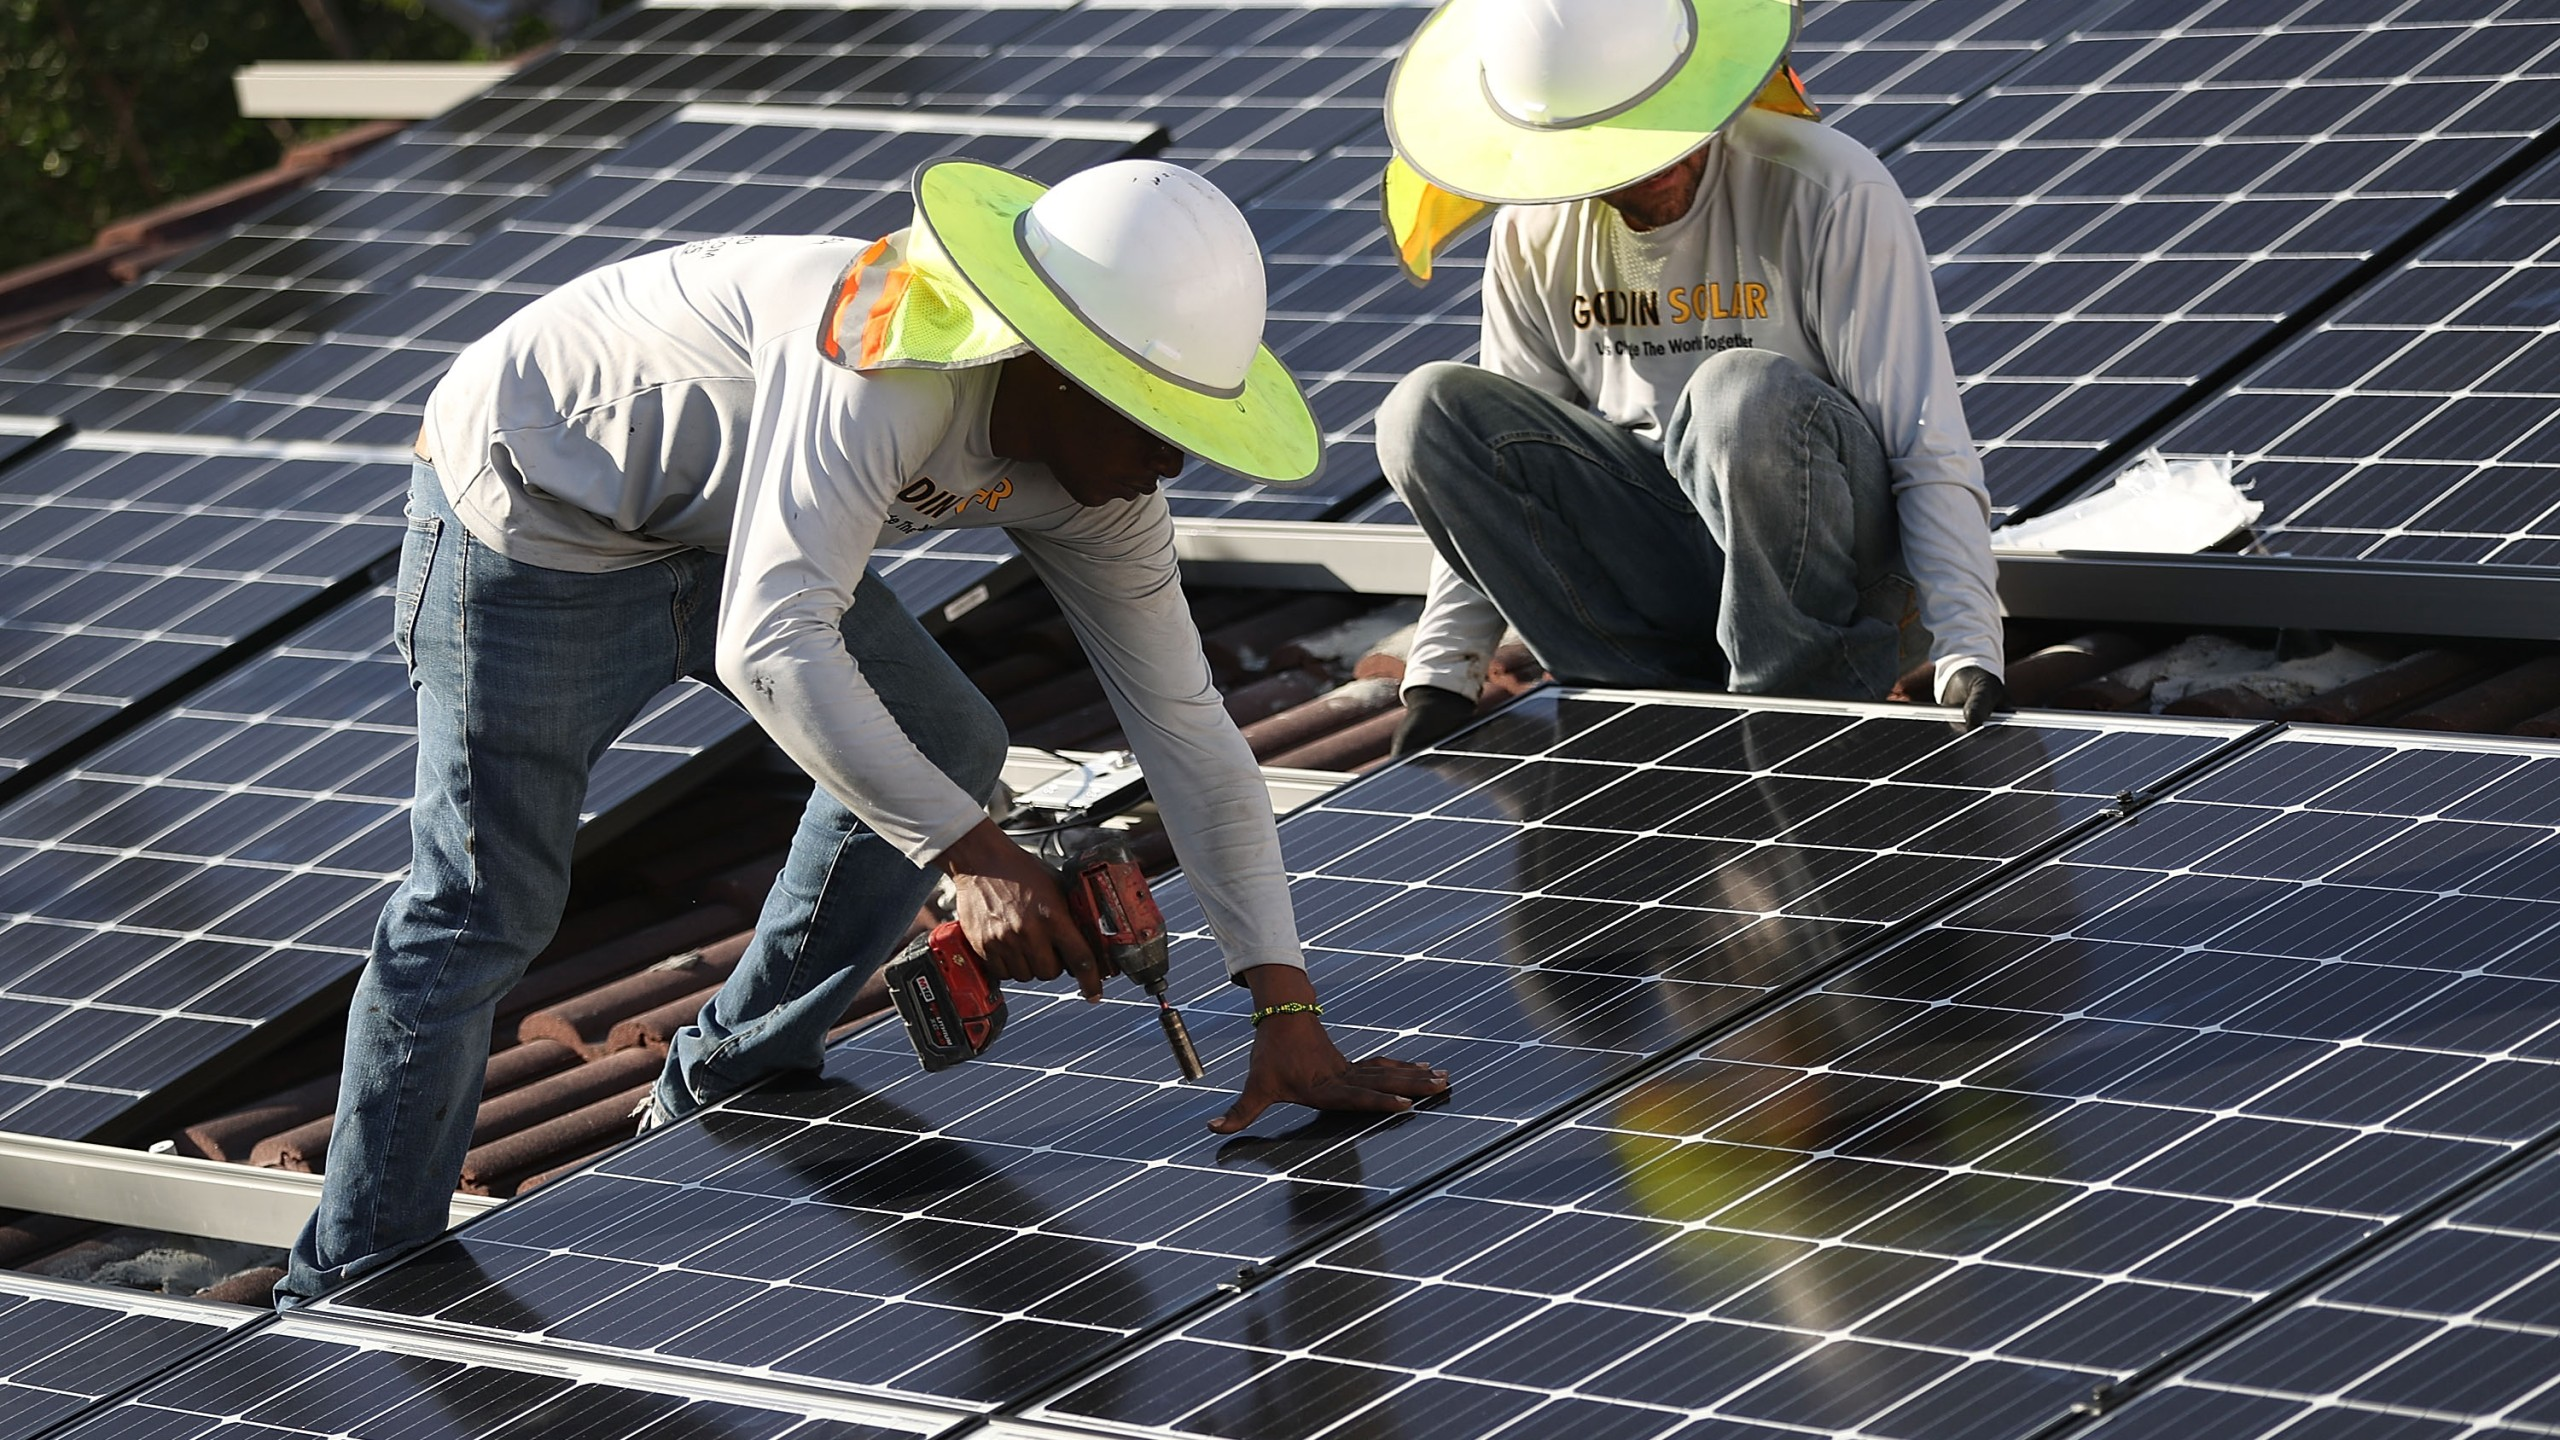 Workers from the Goldin Solar company install a solar panel system on the roof of a home in Palmetto Bay, Florida. (Credit: Joe Raedle/Getty Images)